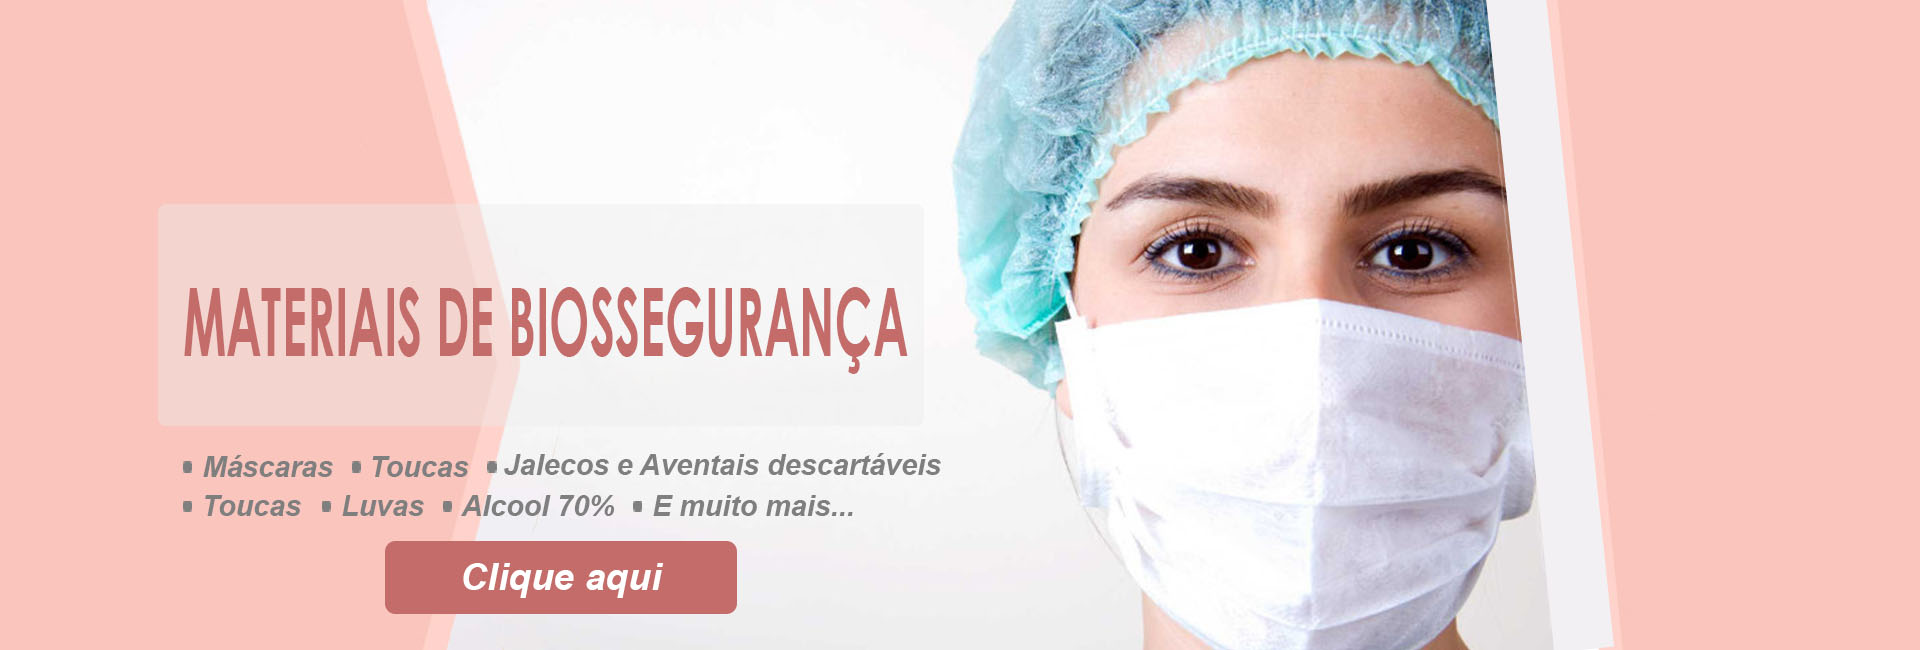 promocao-radiofrequencia effect HTM